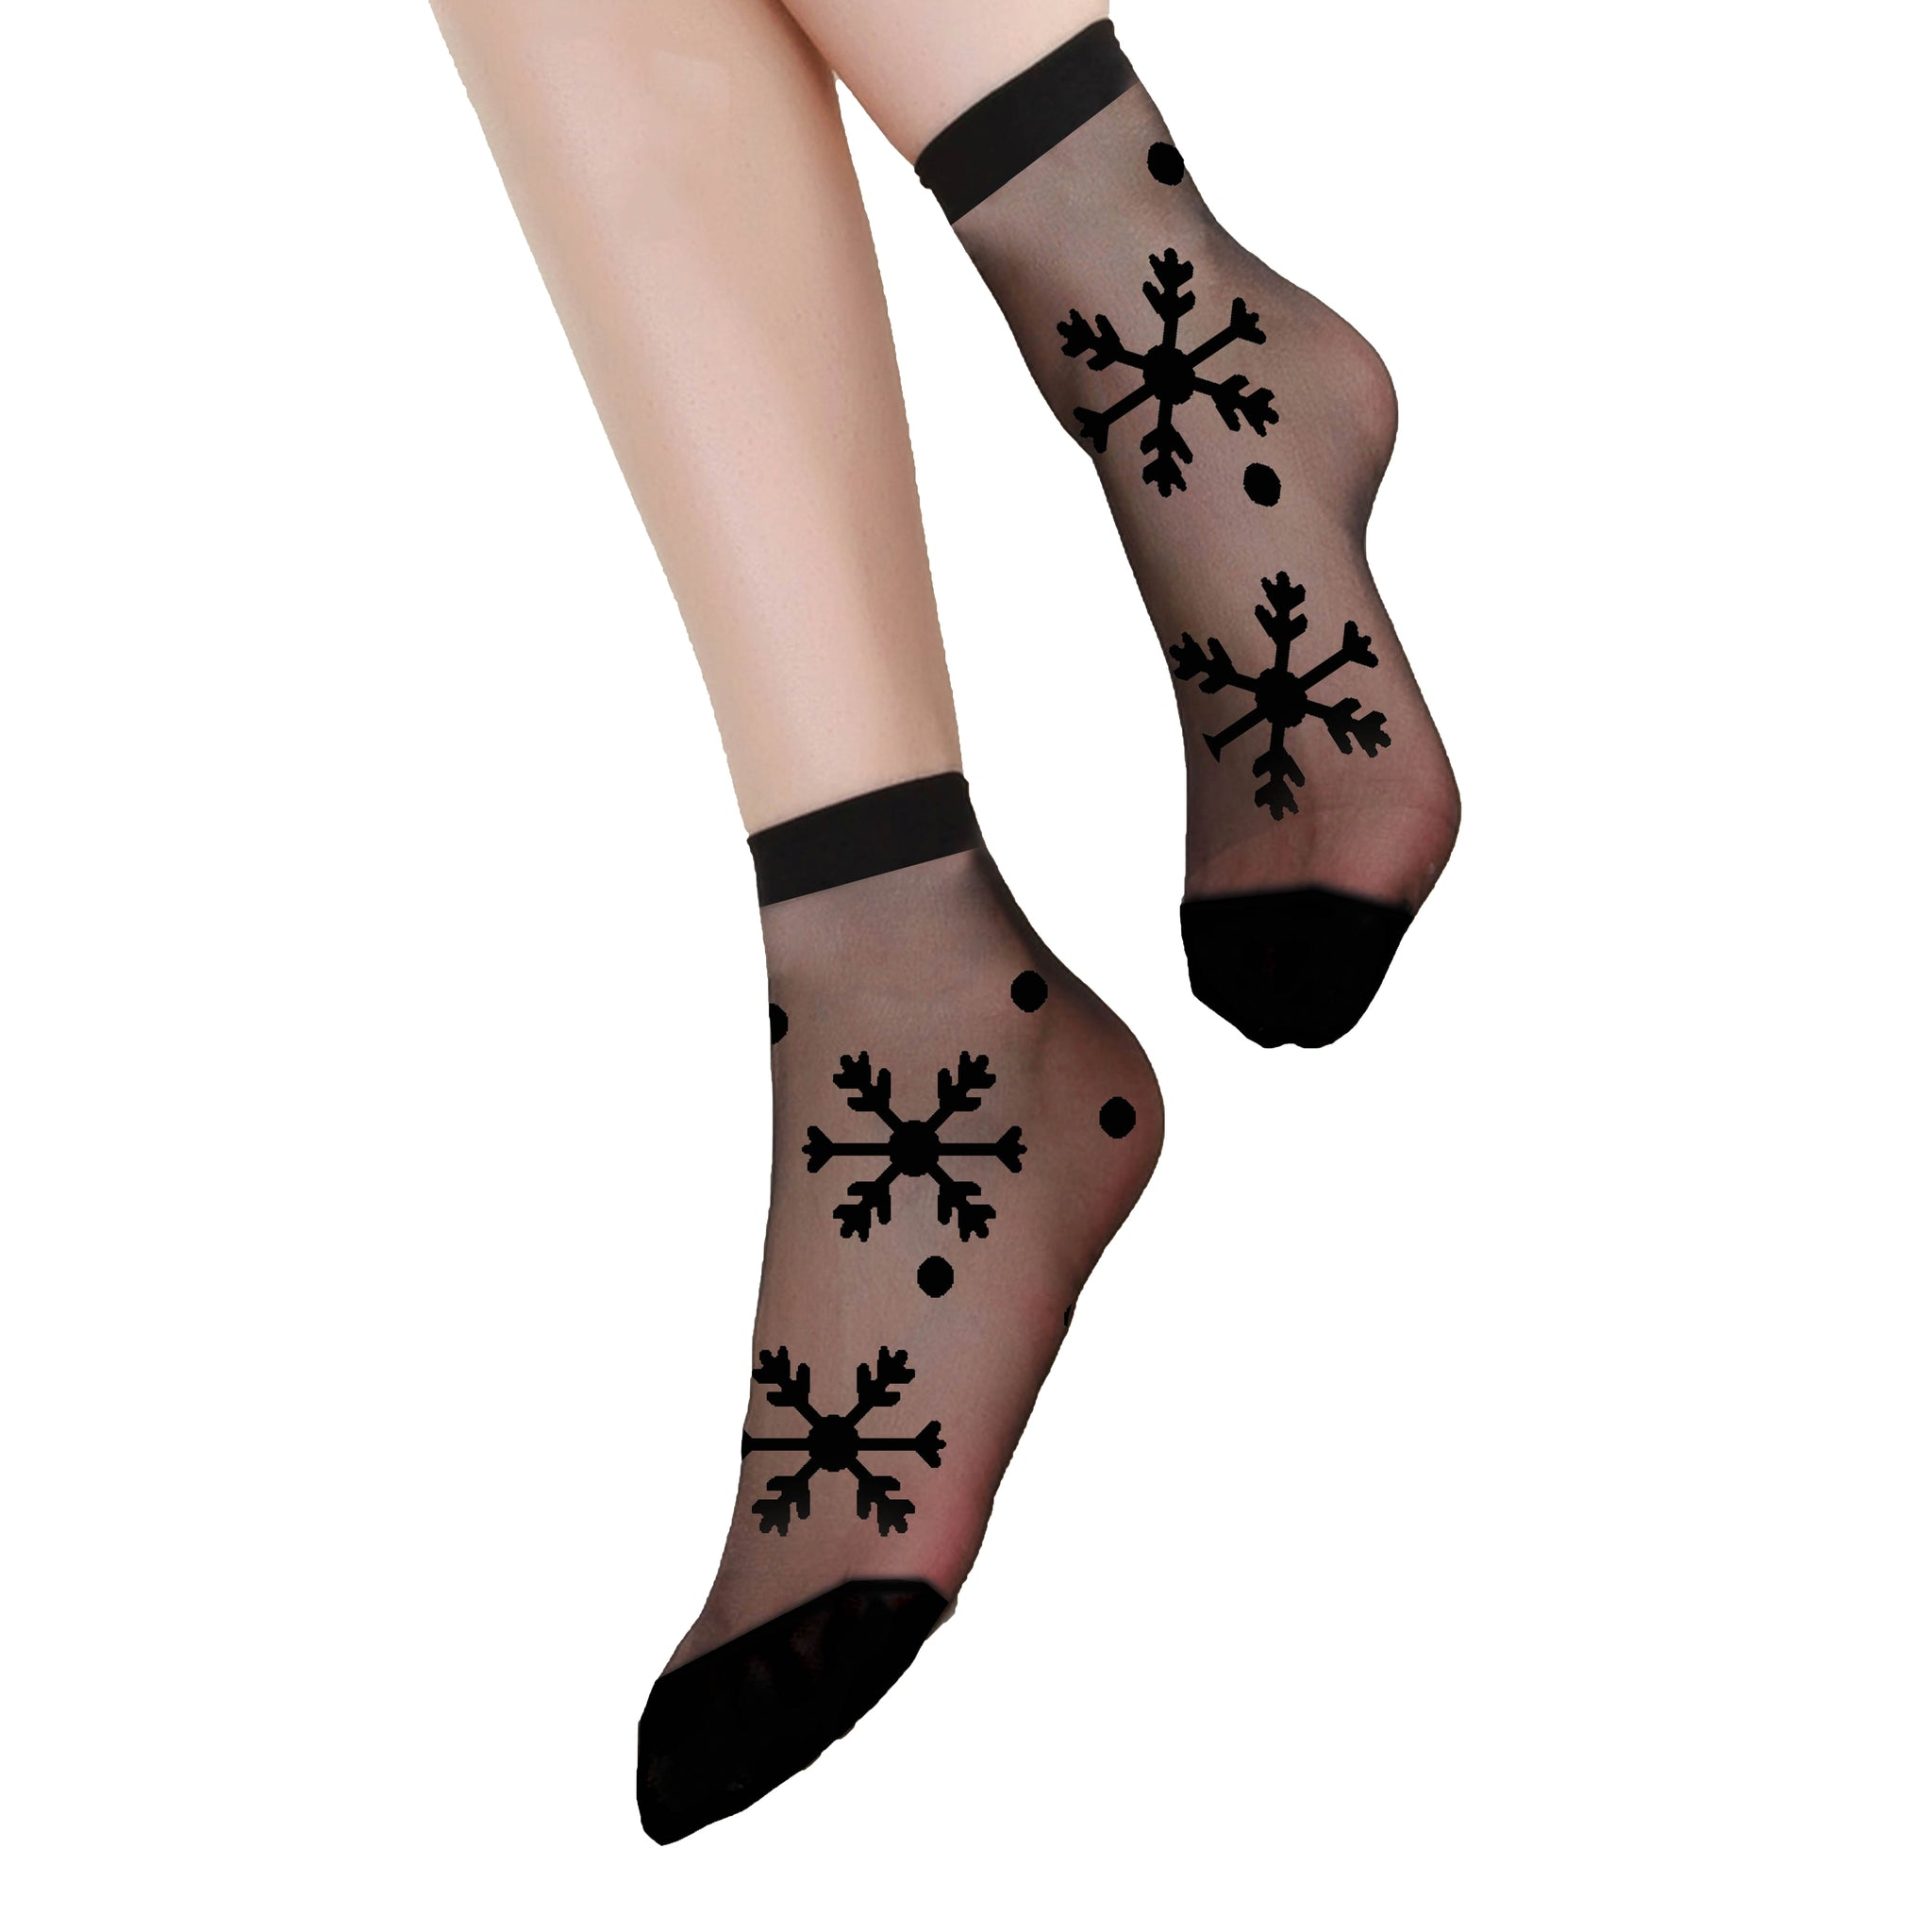 Fashion, Oanez Style, Ultra Sheer 20 Den Patterned Socks